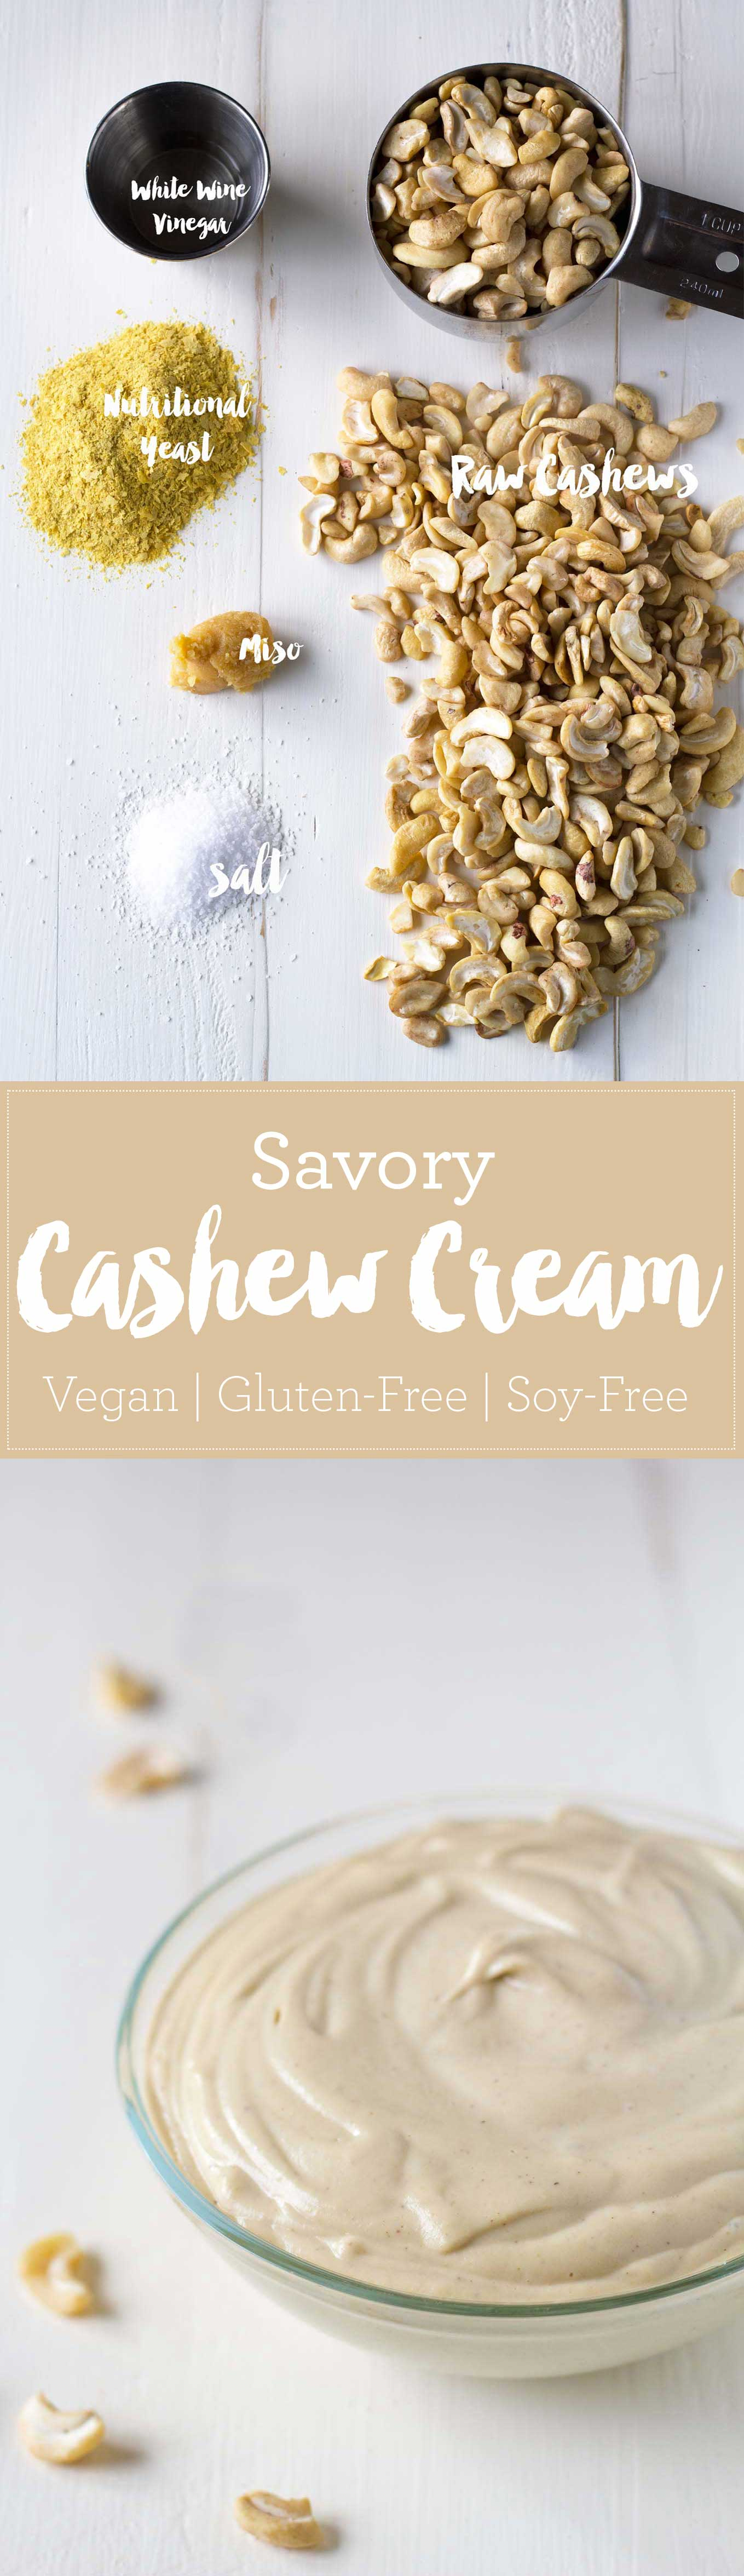 Use this savory cashew cream as a spread, add it to soups as a thickener, or use a soy-free vegan mayonnaise substitute! | http://eatwithinyourmeans.com